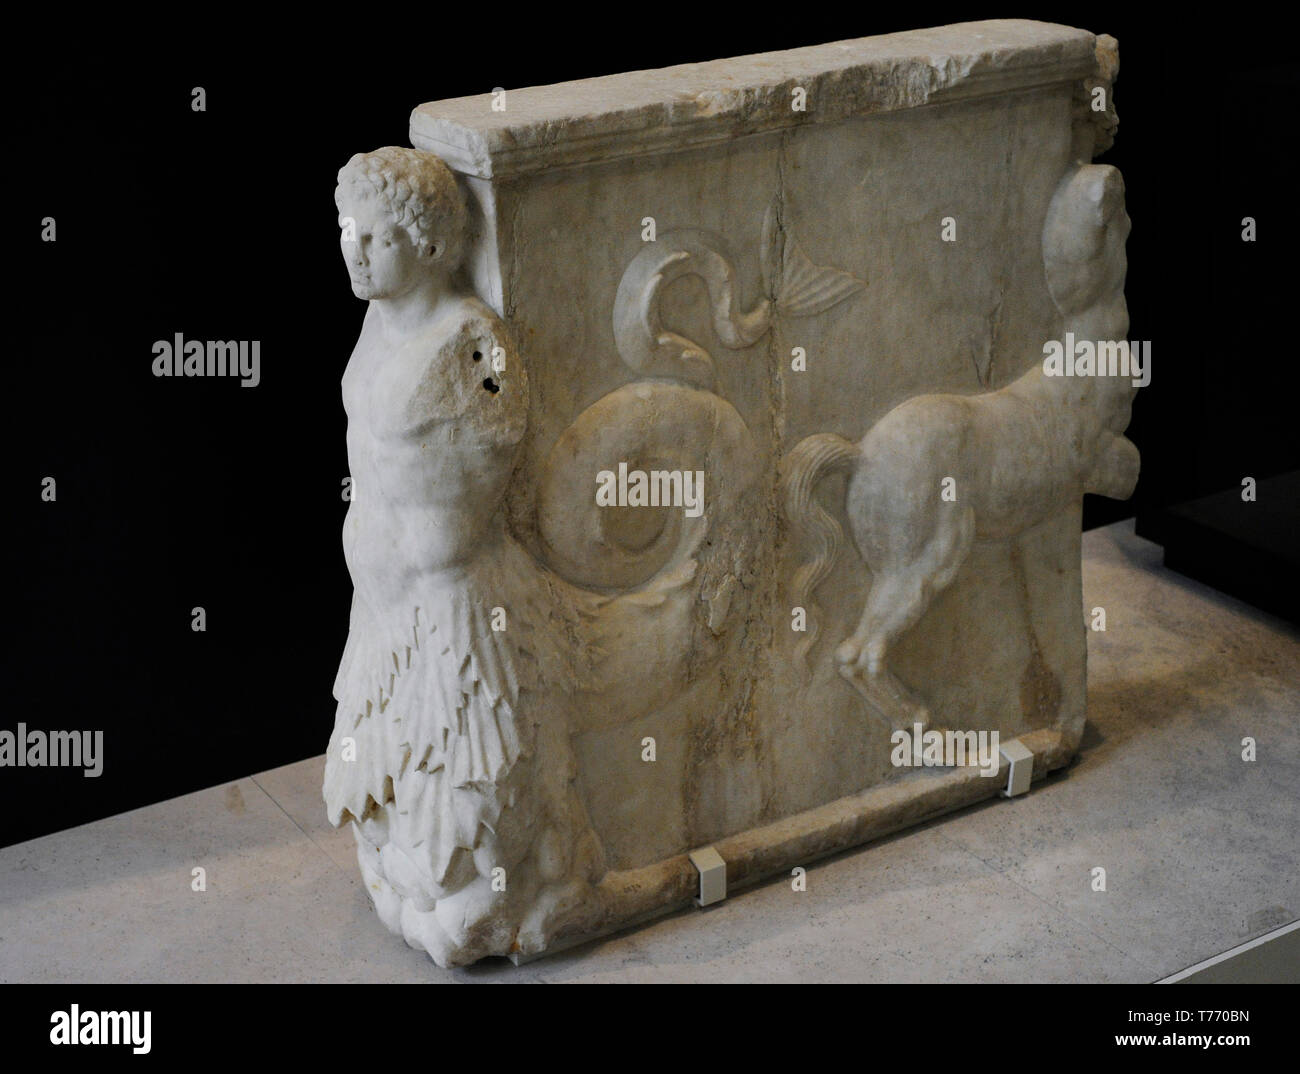 Table base. 1st century AD. Adorned with reliefs depicting a Triton and a centaur. Marble. From Italy. National Archaeological Museum. Madrid. Spain. - Stock Image